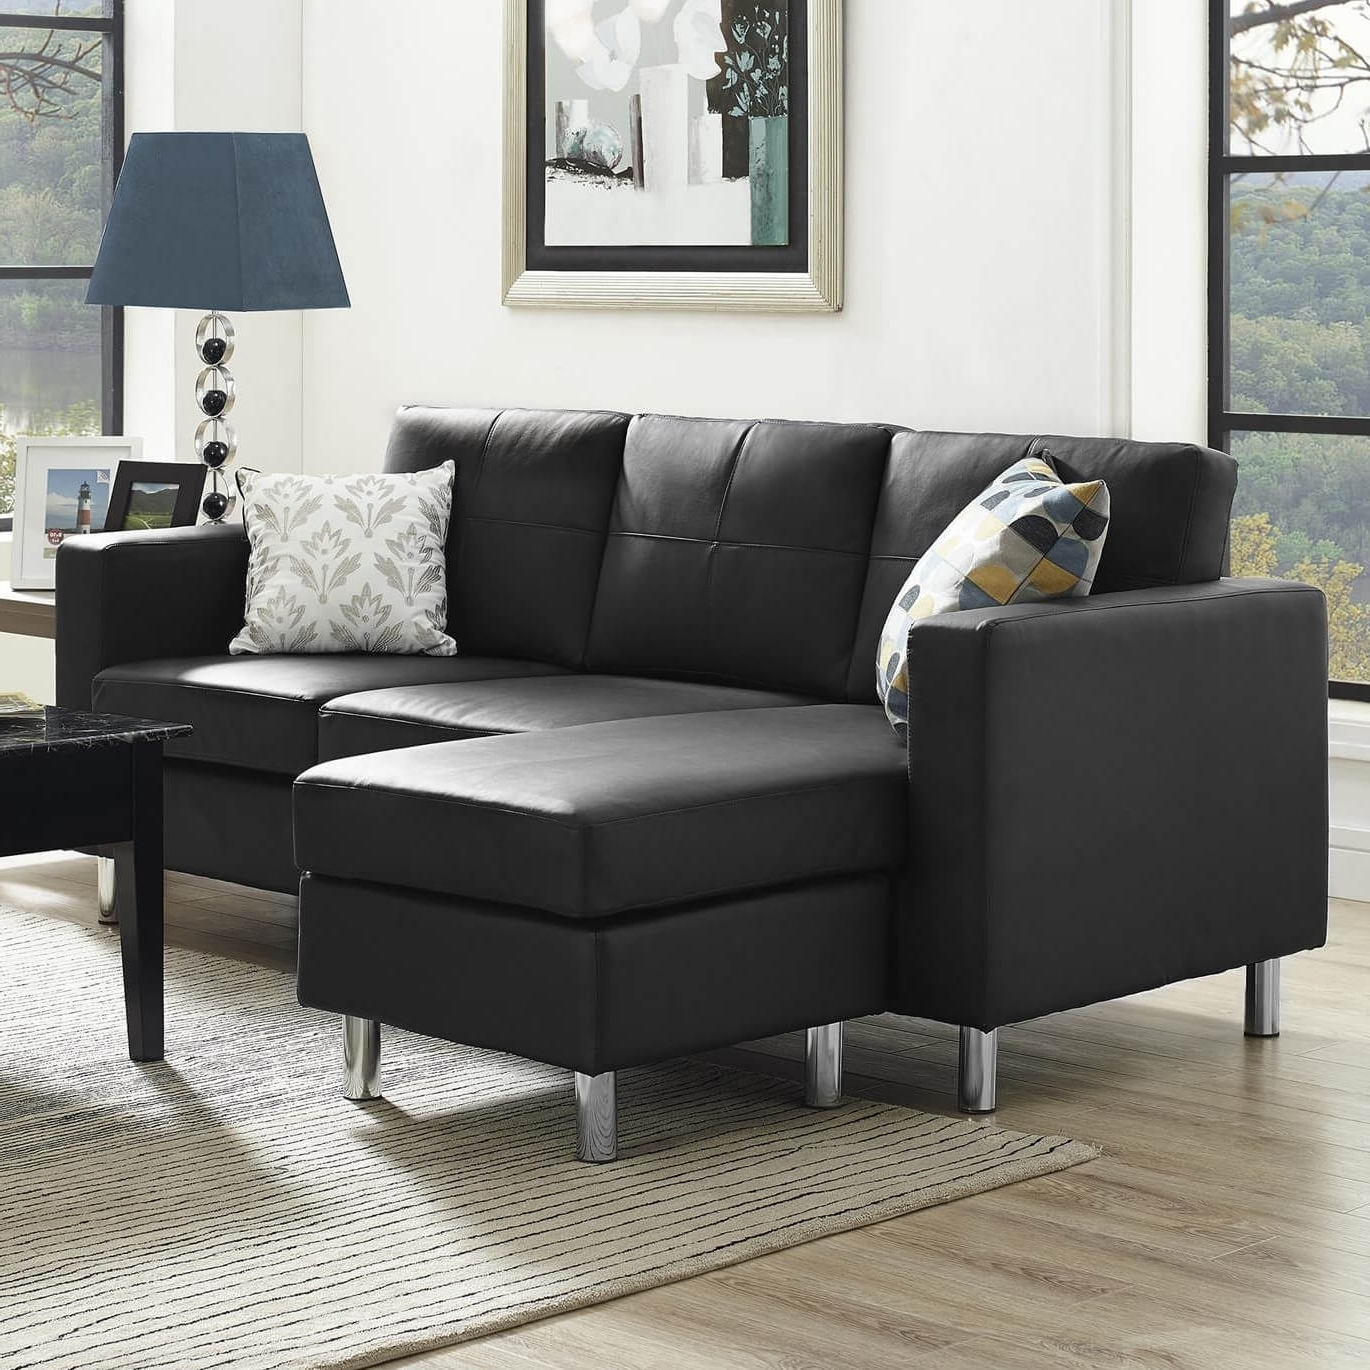 40 Cheap Sectional Sofas Under $500 For 2018 inside Best and Newest Canada Sectional Sofas For Small Spaces